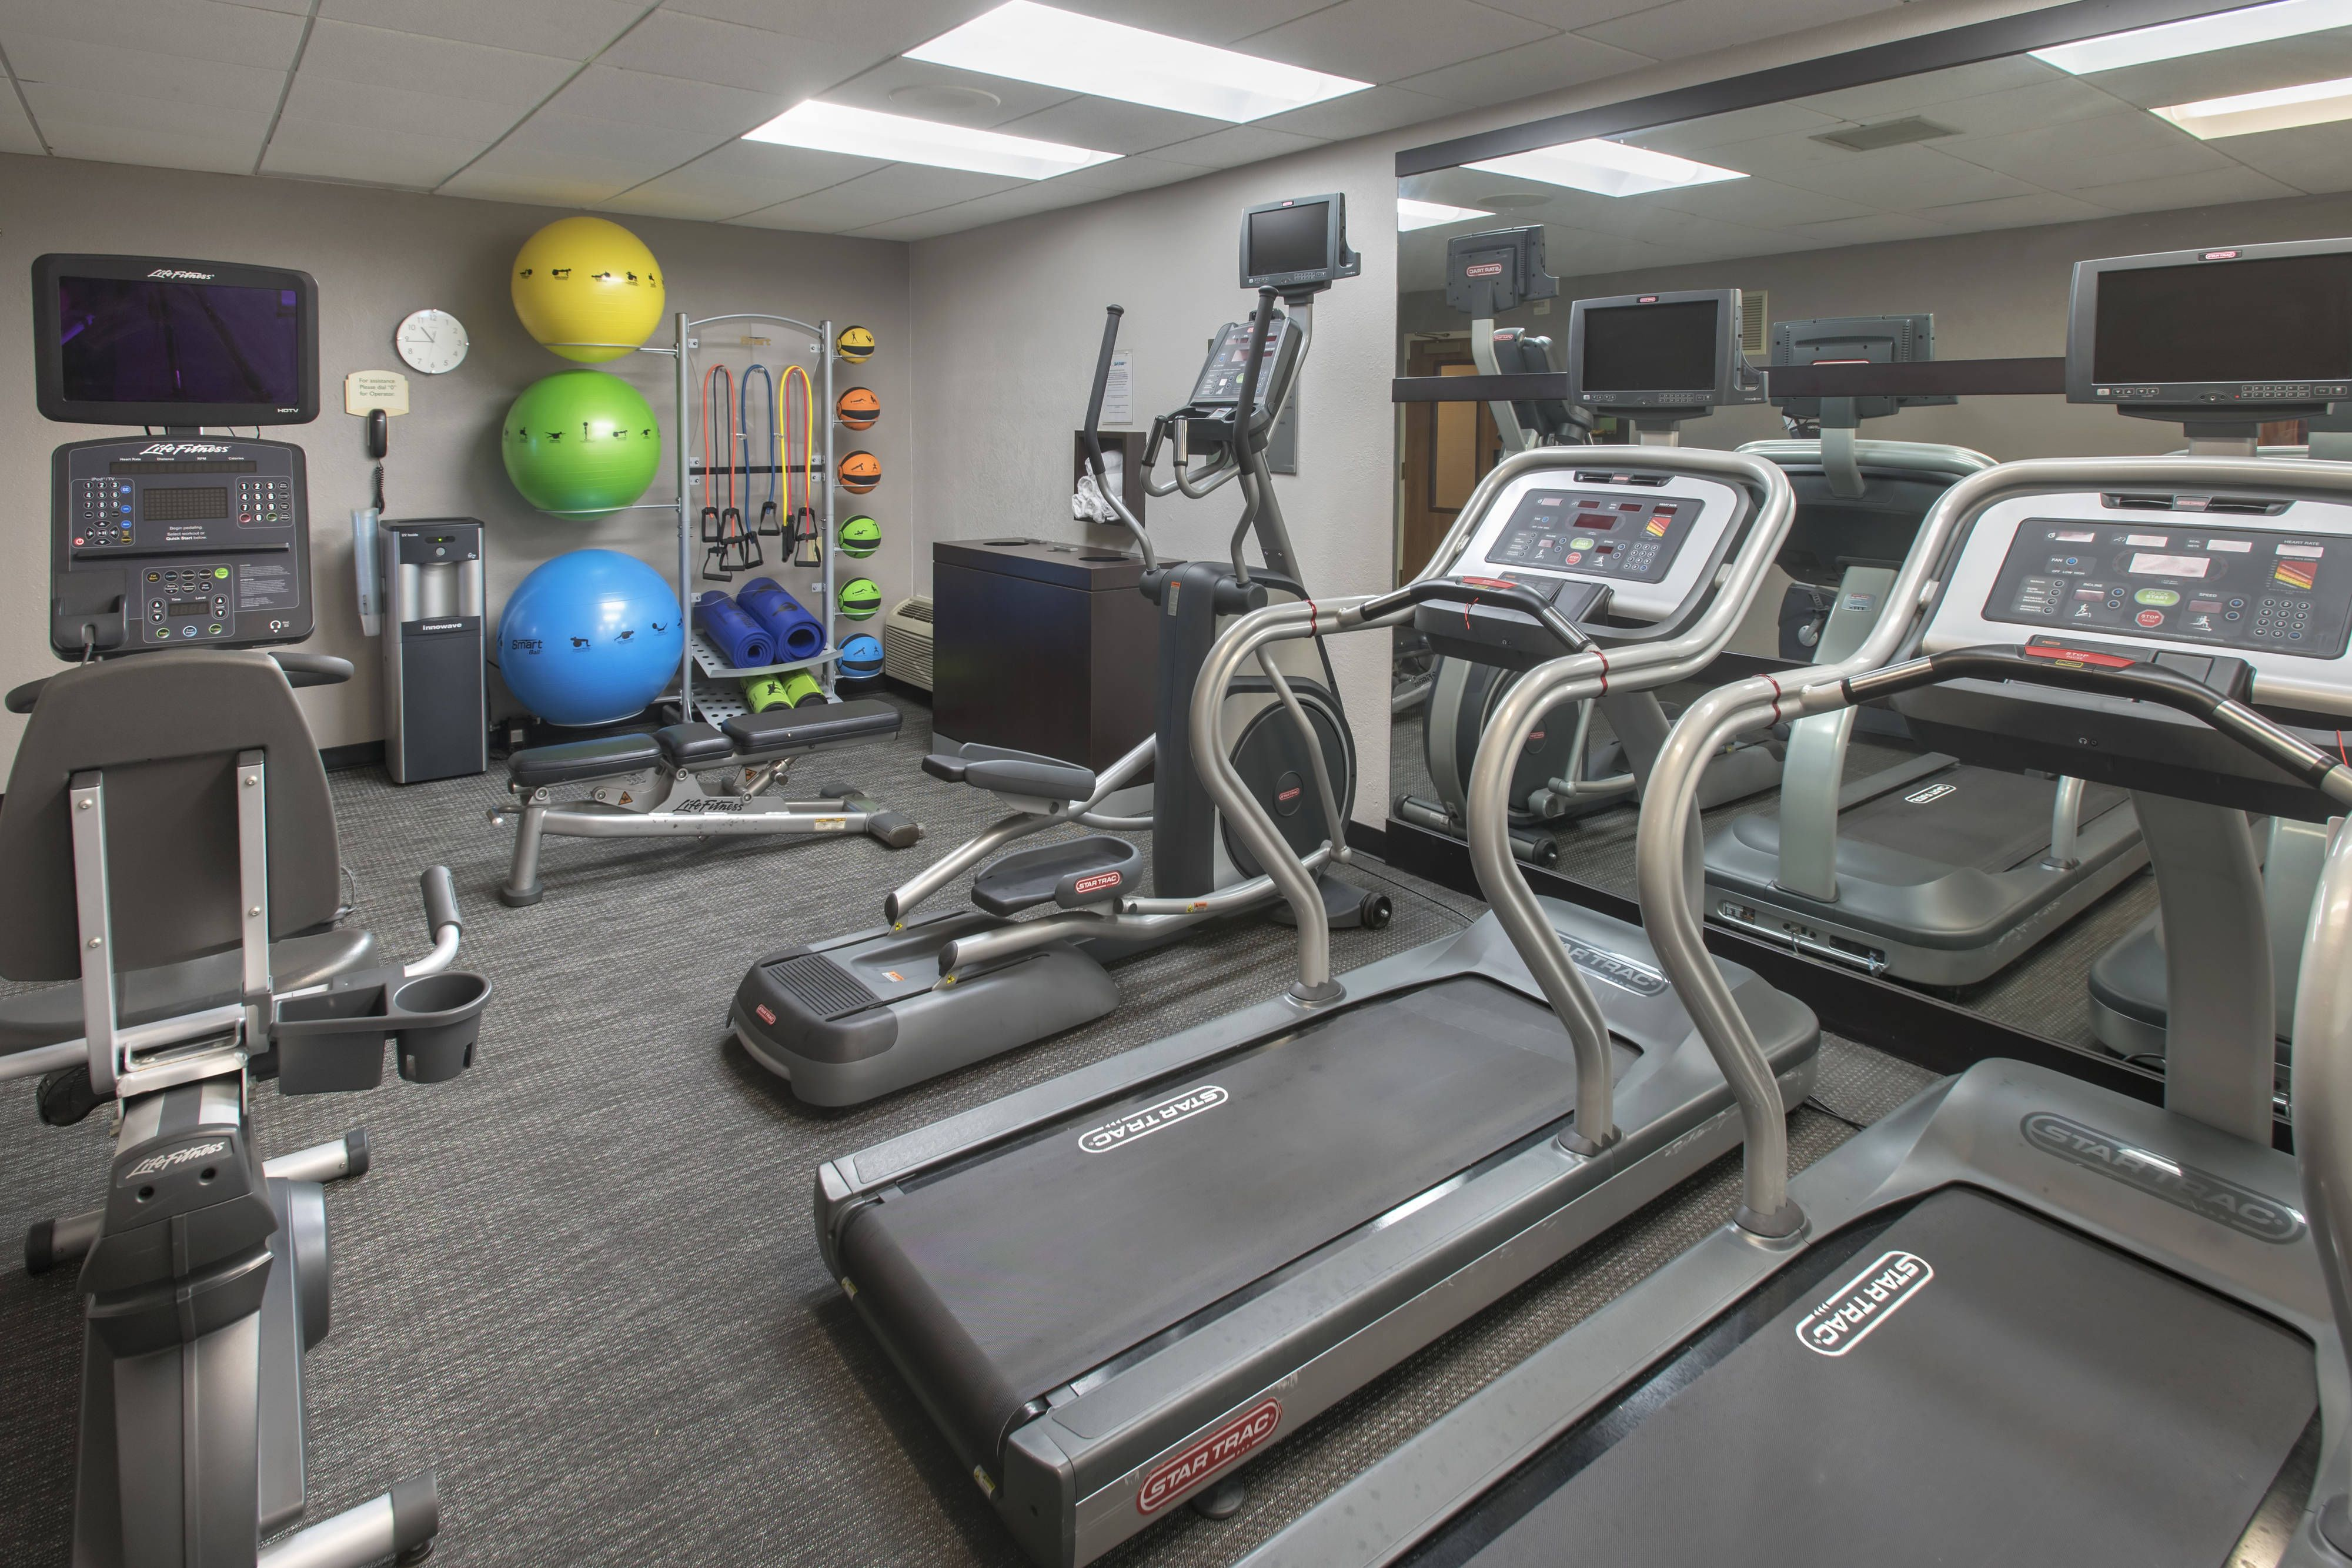 Courtyard Mt Laurel Fitness Center Visiting Holiday Travel Courtyard Hotel Event Space